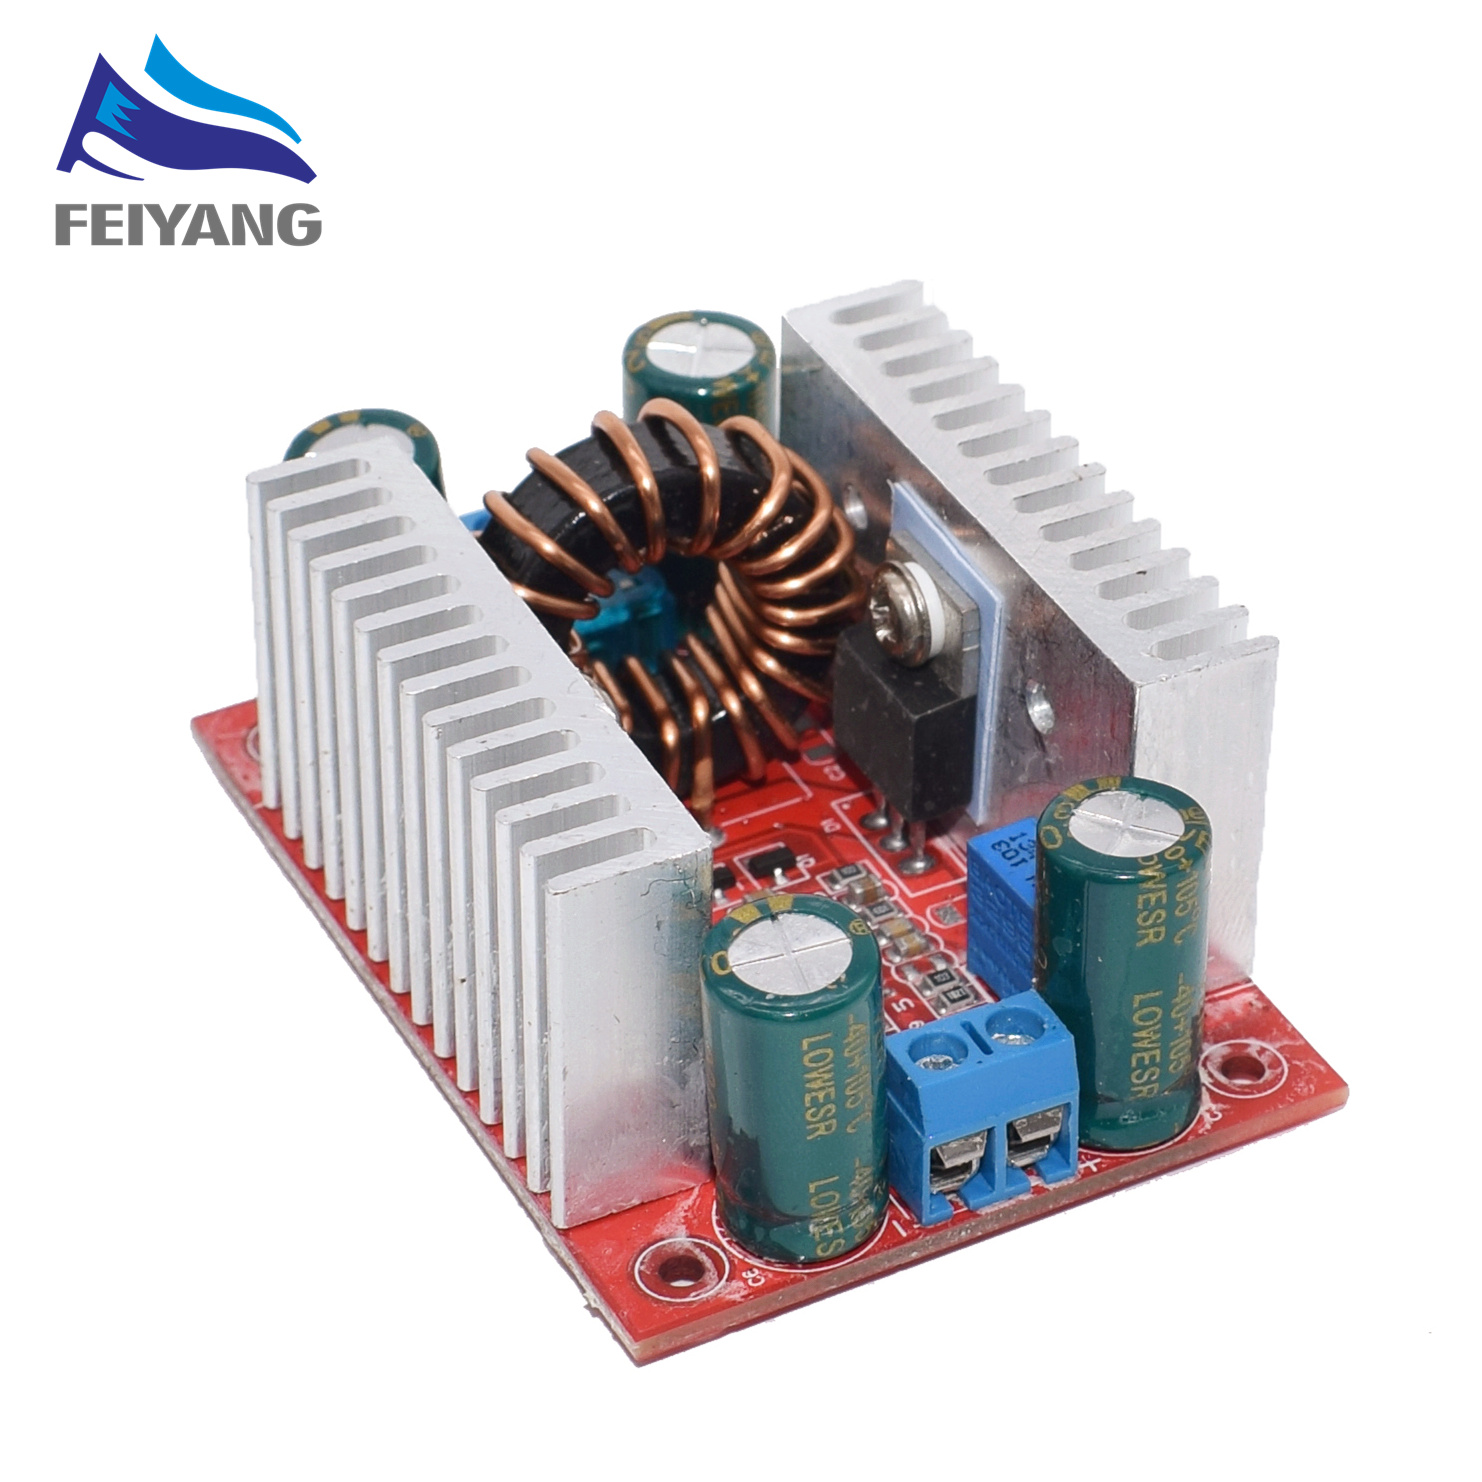 Smd 3 12v To 05a Step Up Boost Converter Power Supply Module Capacitor Charger Dc 400w 15a Constant Current Led Driver 85